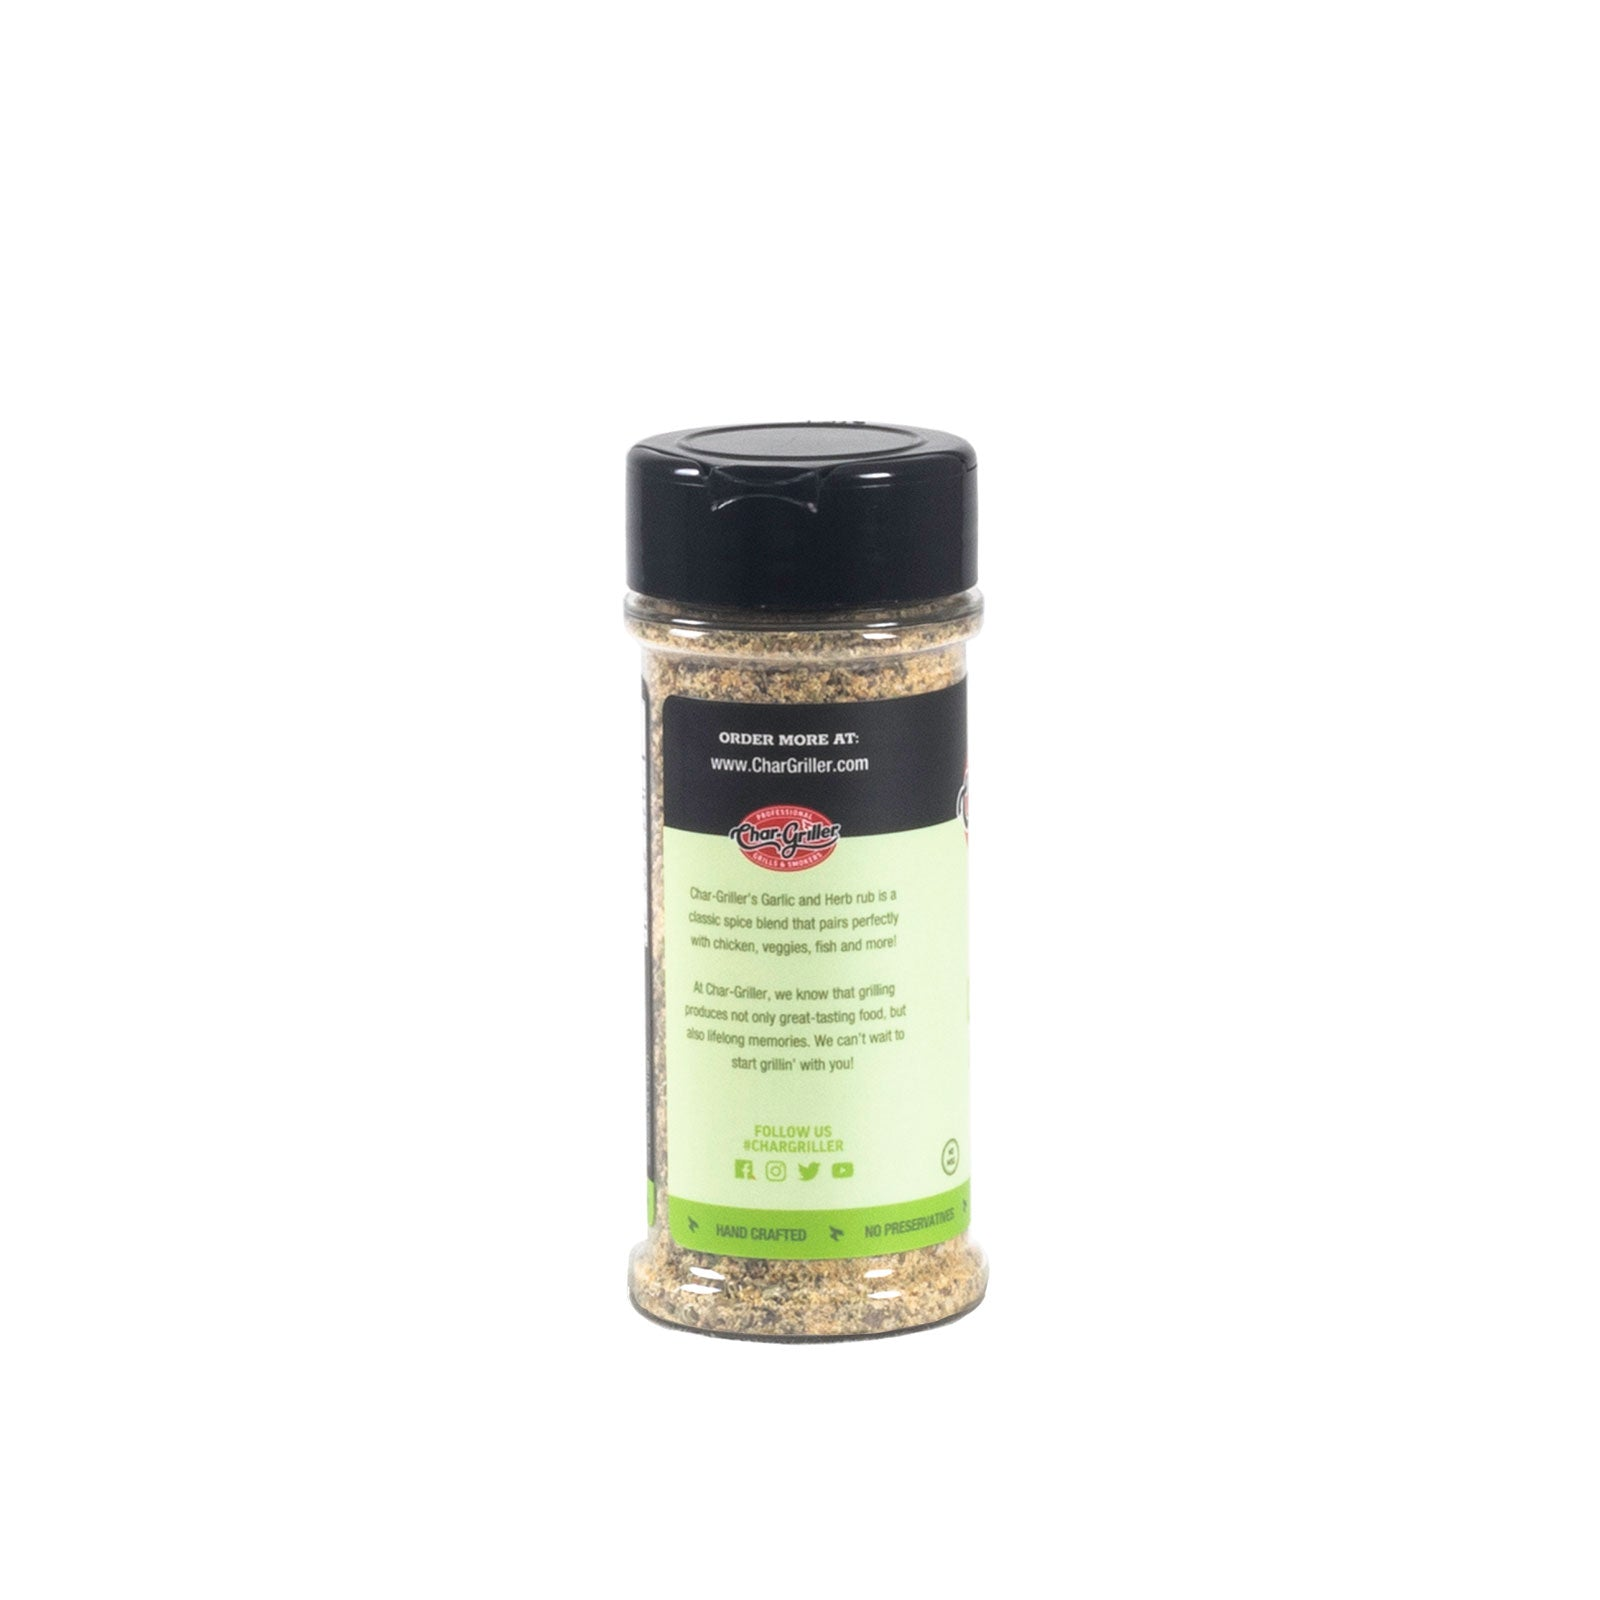 RUB - GARLIC HERB 4.6oz.